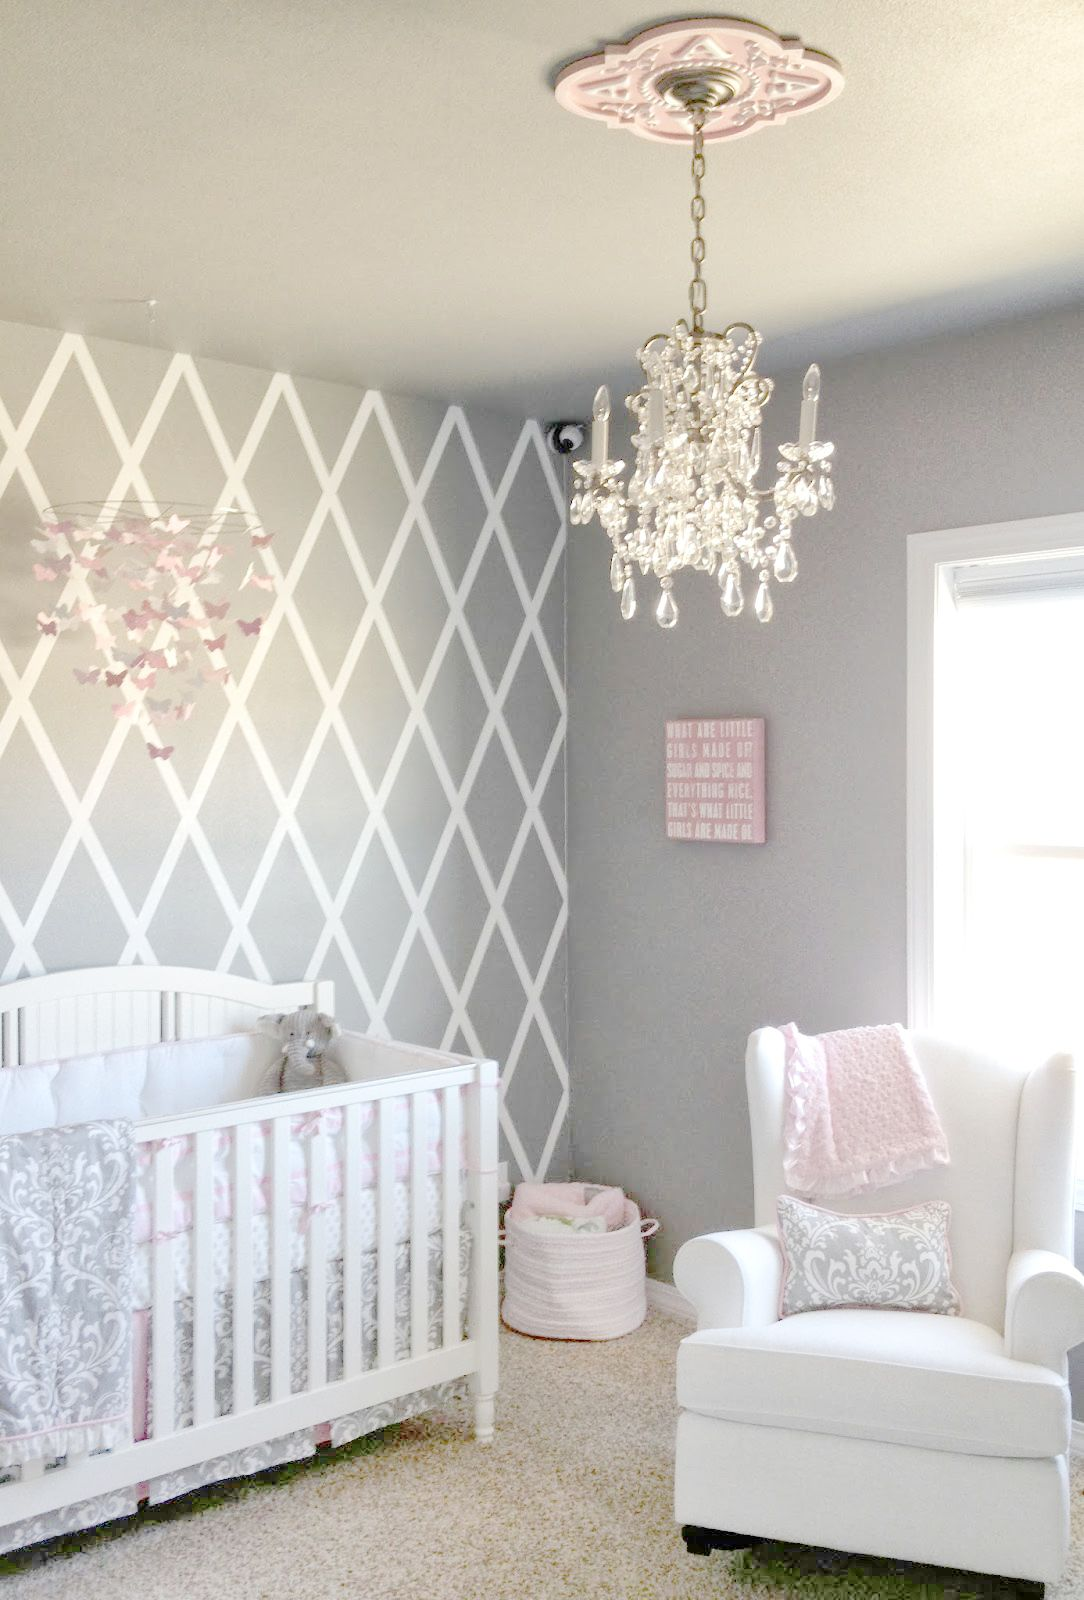 Best Kitchen Gallery: Beautiful Gray And Pink Nursery Features Our Stella Gray Baby of Baby Girl Room Designs  on rachelxblog.com